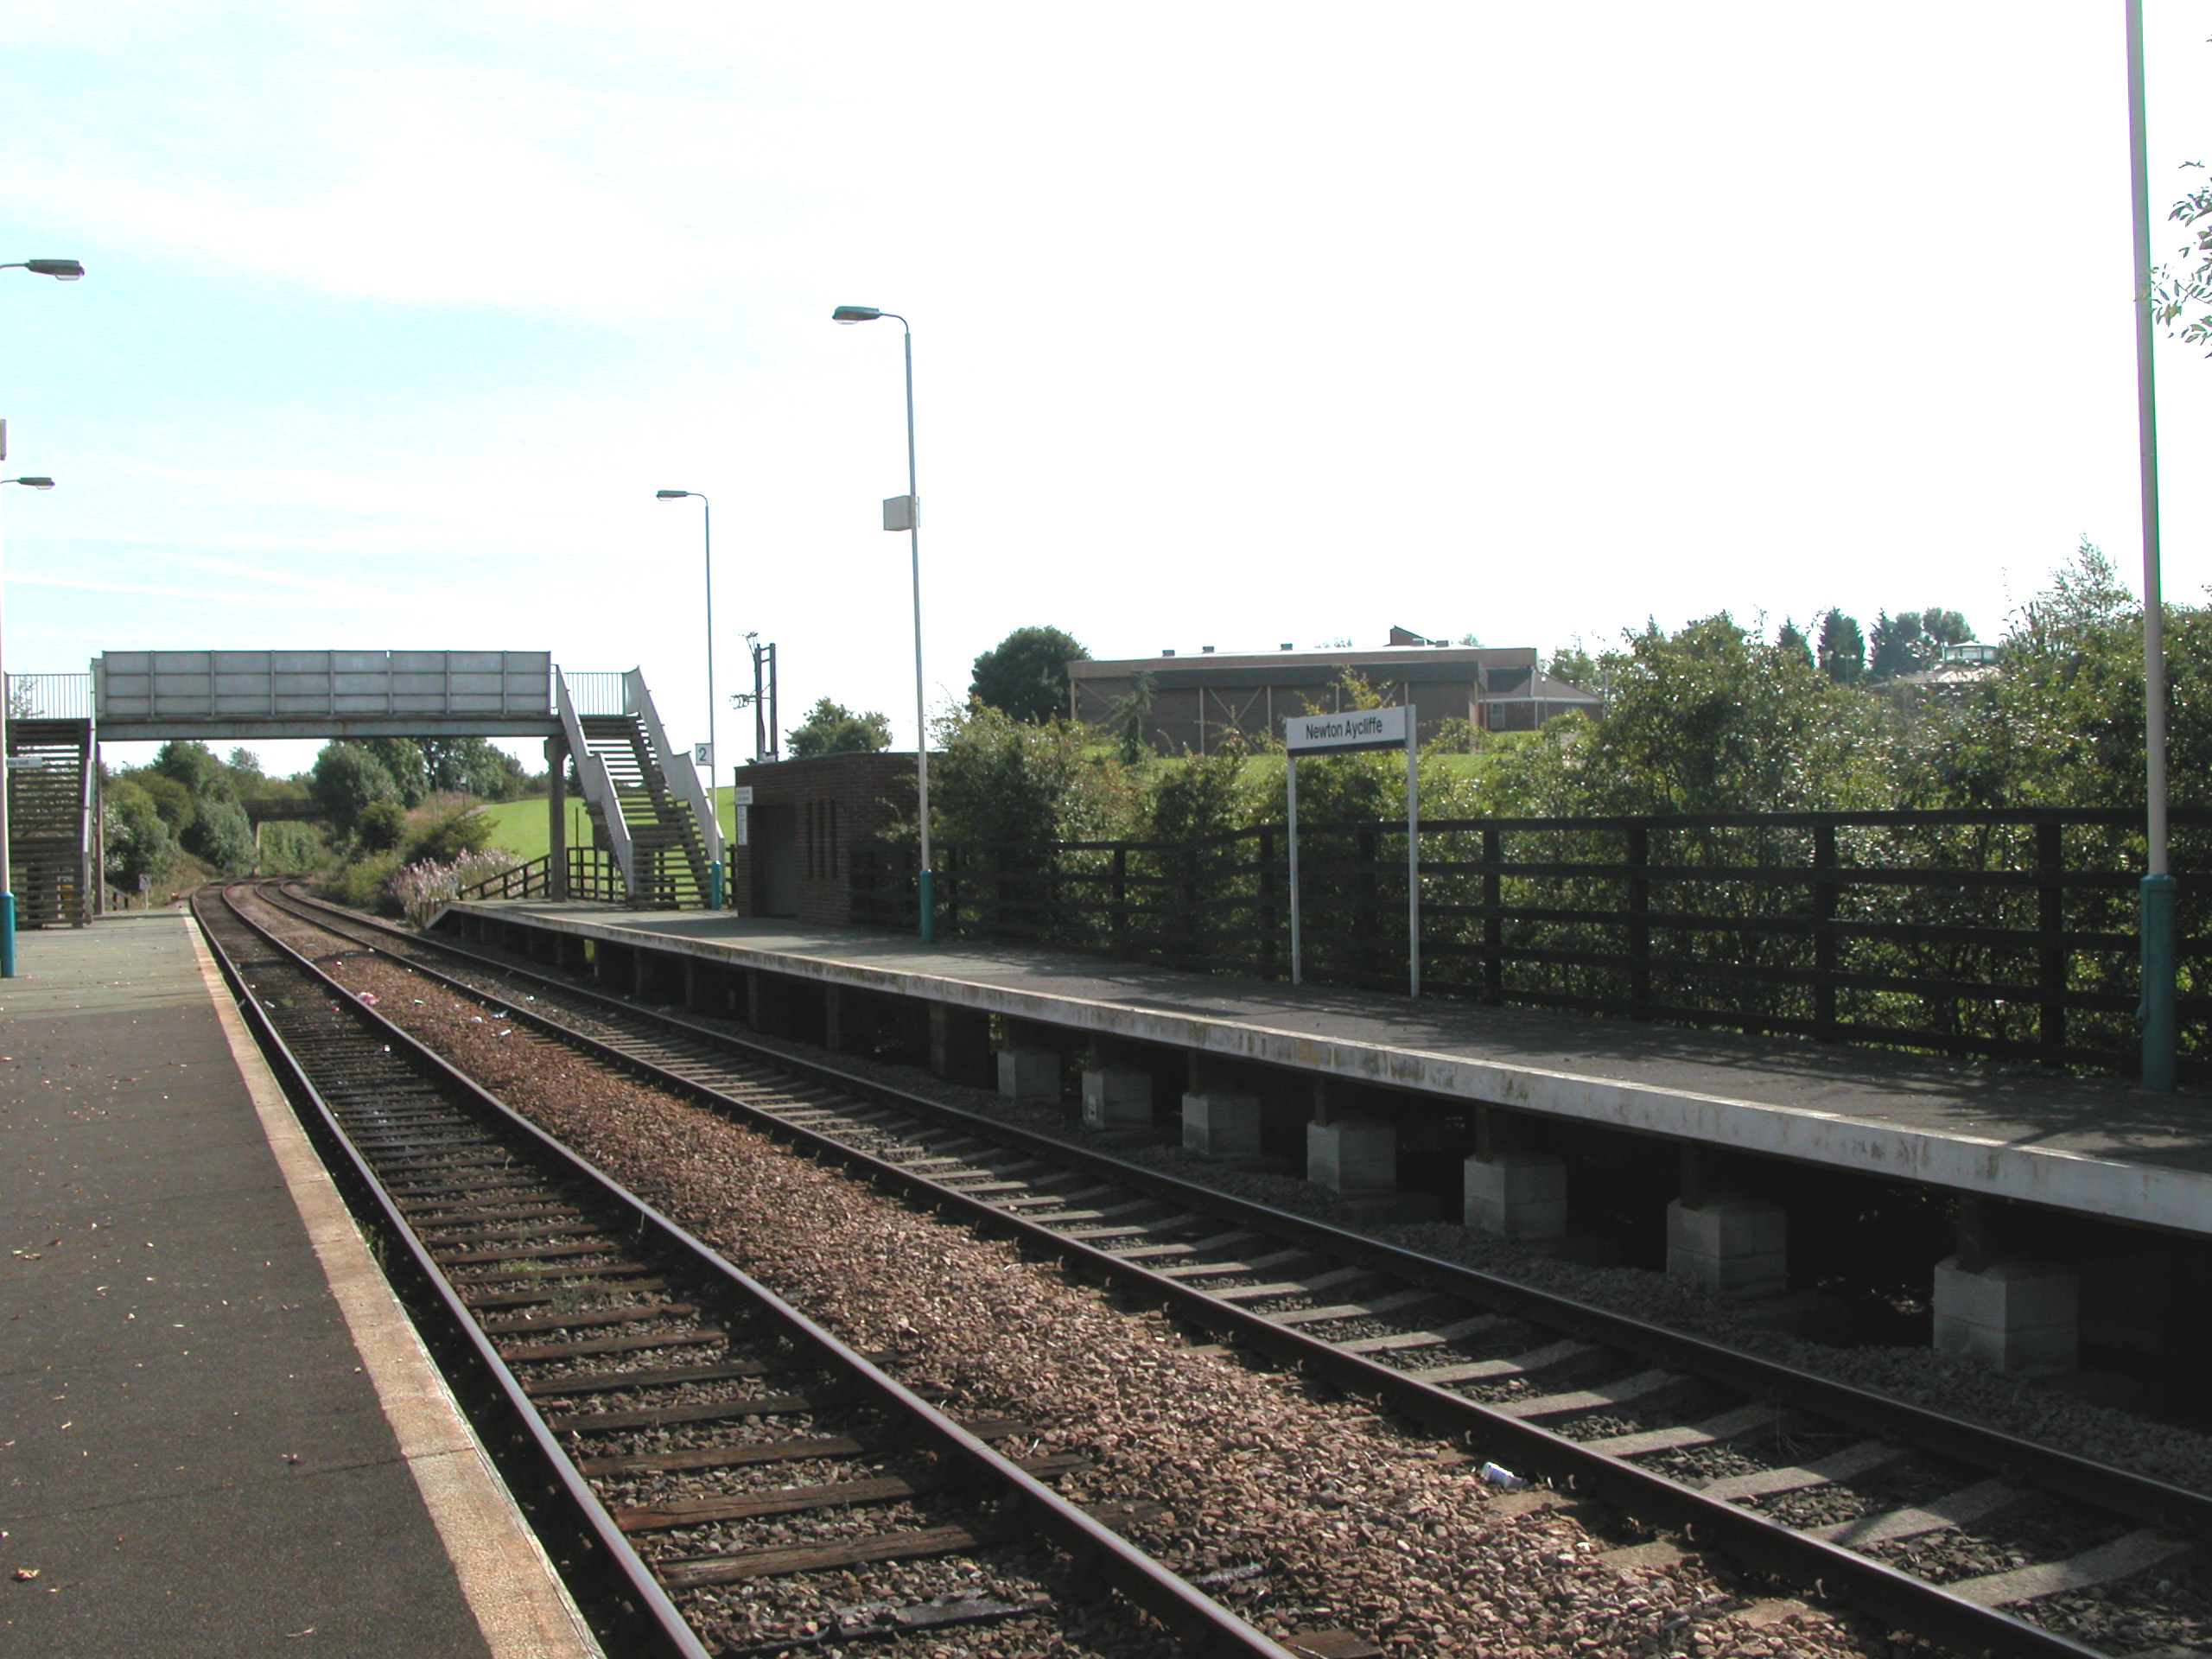 Benefits Won for Local People from New Rail Franchises